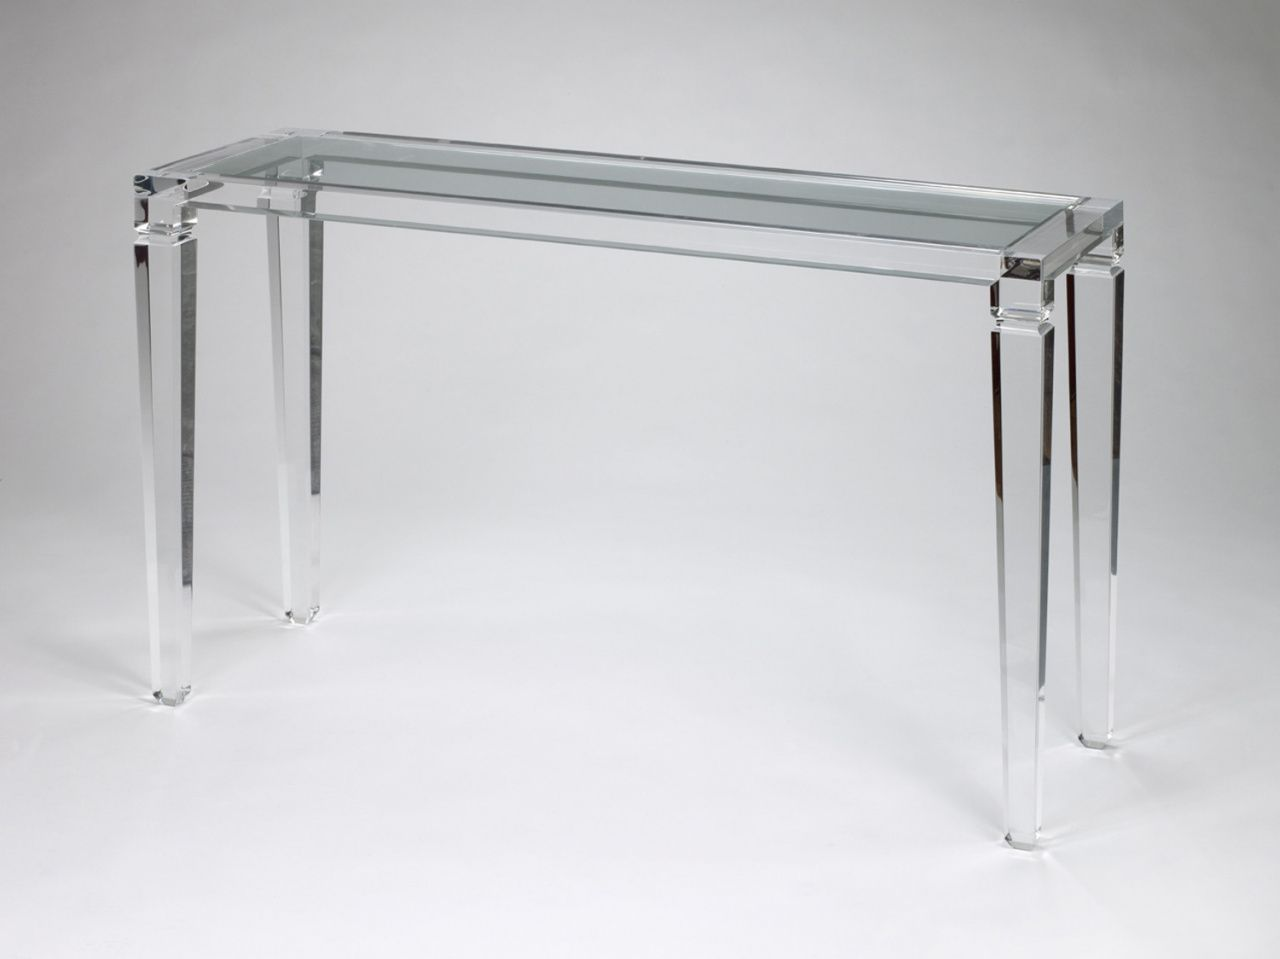 clear acrylic furniture. clear acrylic sofa table - best home office furniture check more at http:// r